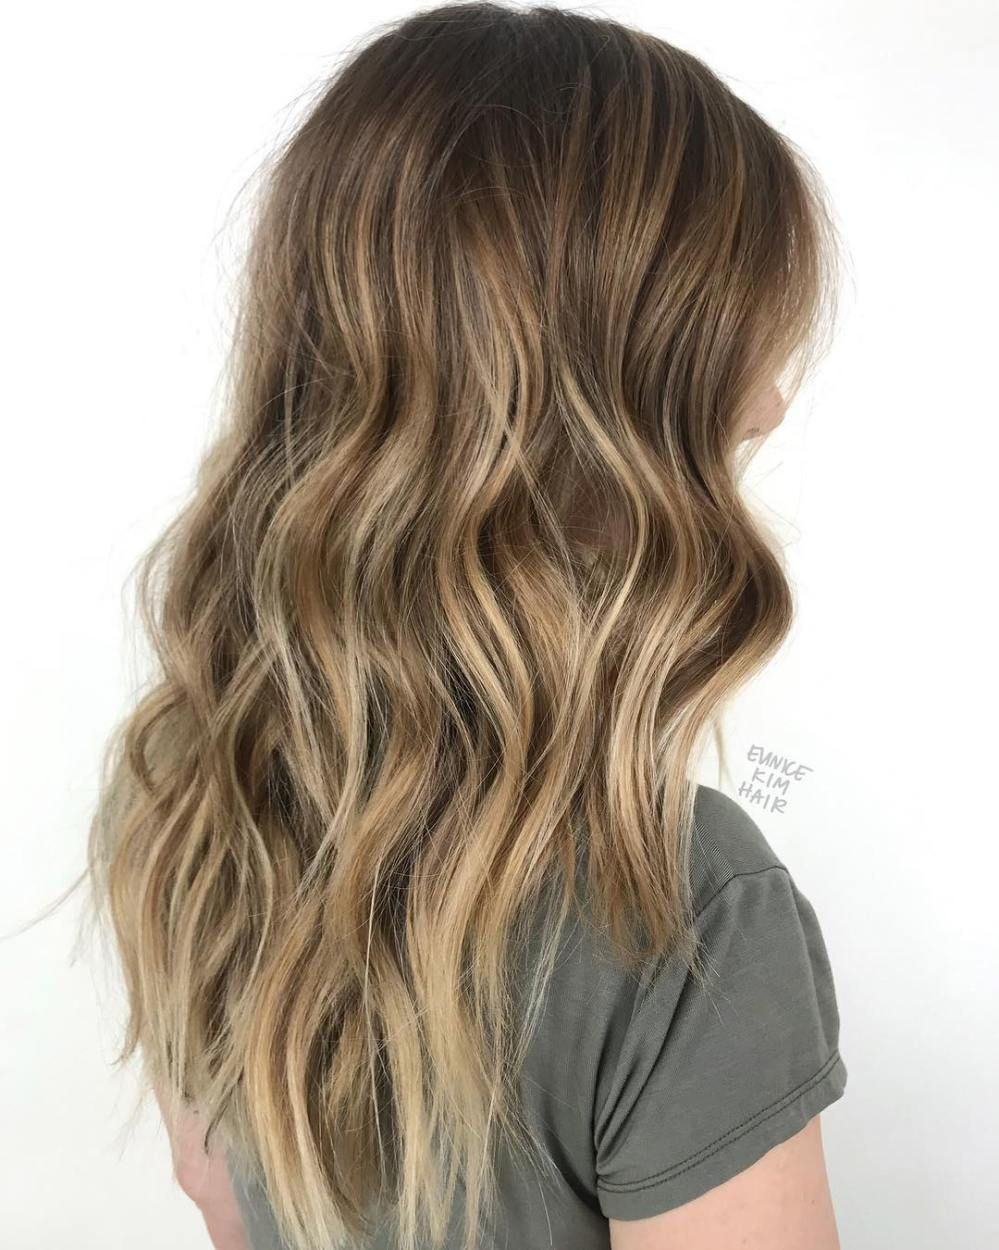 50 Ideas For Light Brown Hair With Highlights And Lowlights Brown Blonde Hair Hair Highlights Brown Hair With Highlights